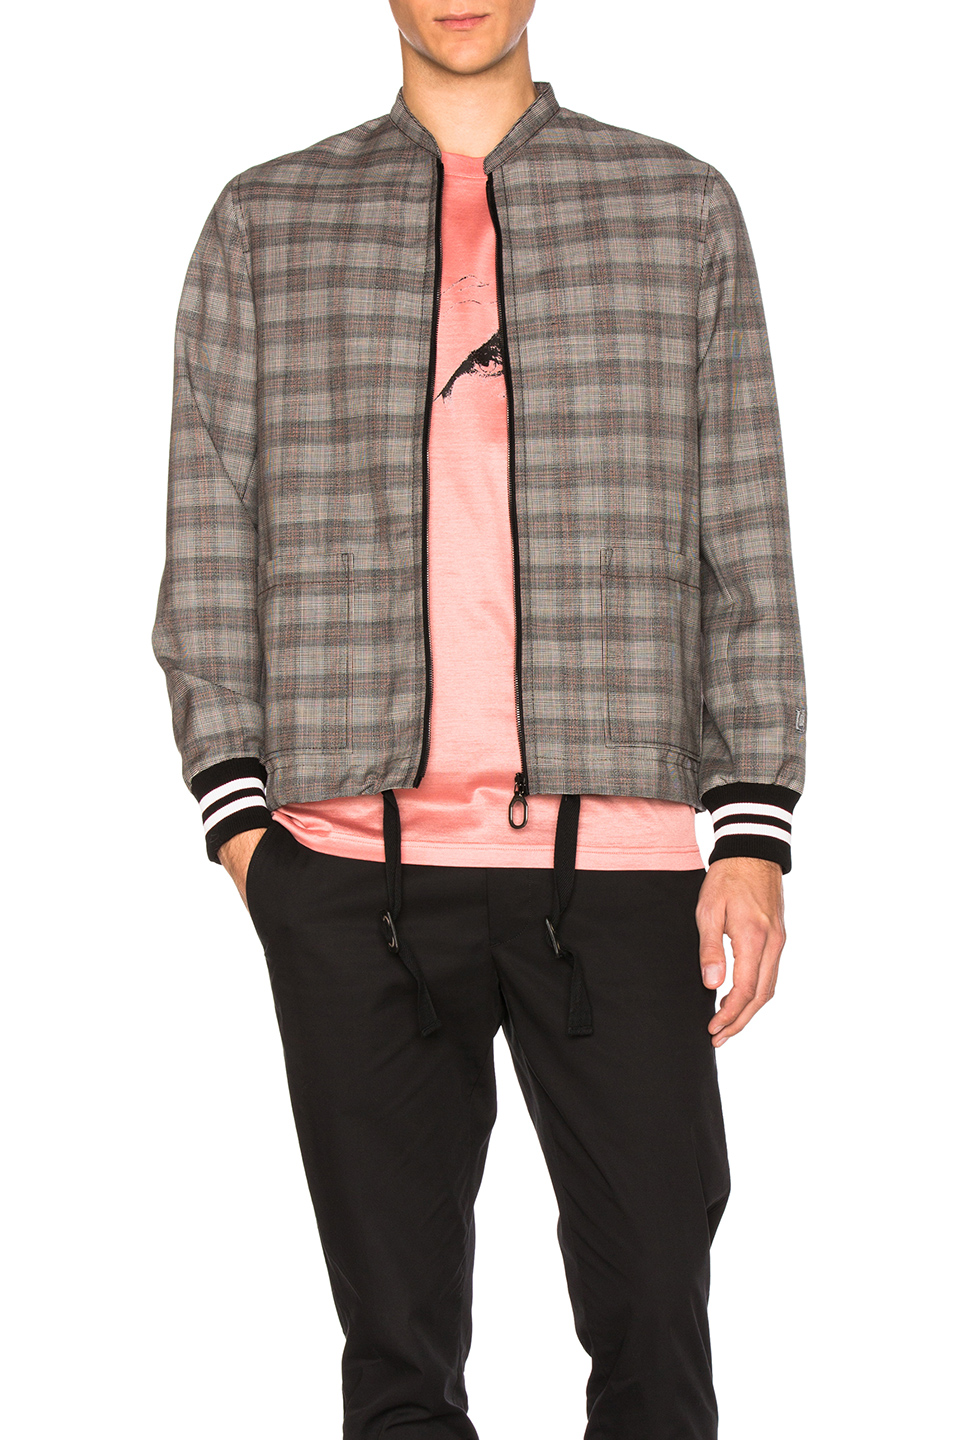 Lanvin Wool Prince of Wales Racing Jacket in Gray,Checkered & Plaid